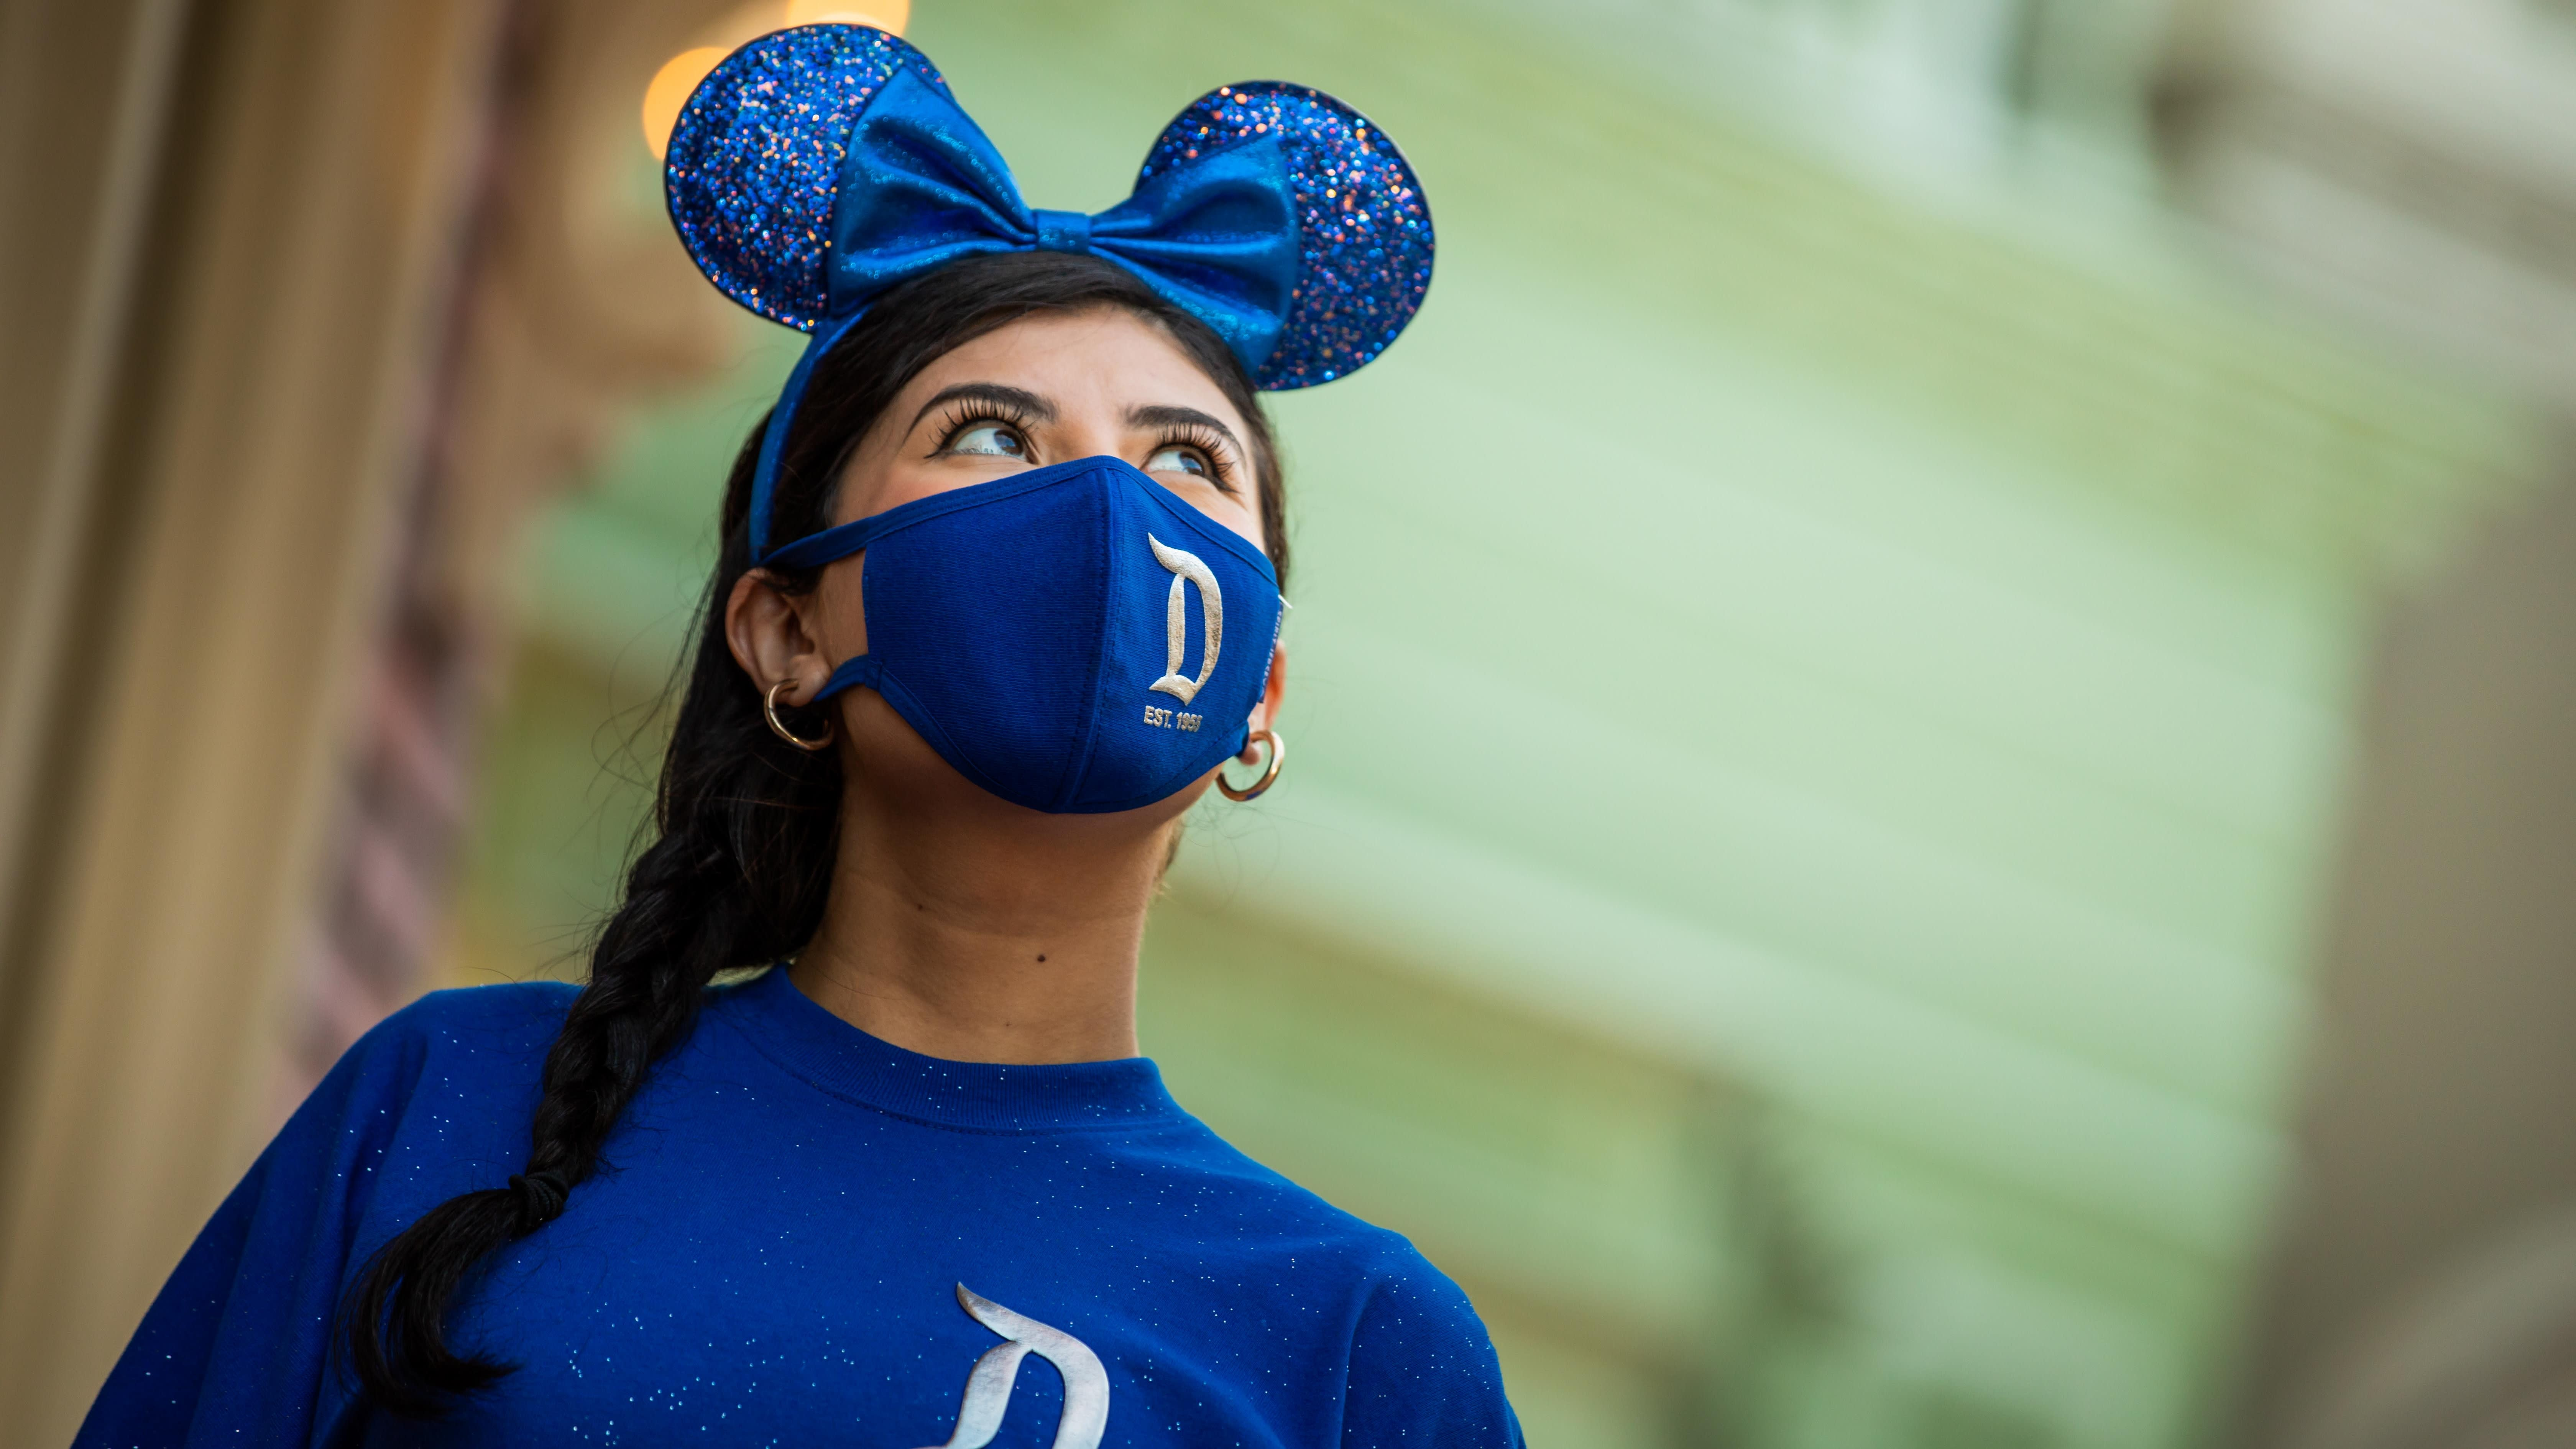 Disney fans celebrate the reopening of Disneyland with custom Mickey ears and masks thumbnail